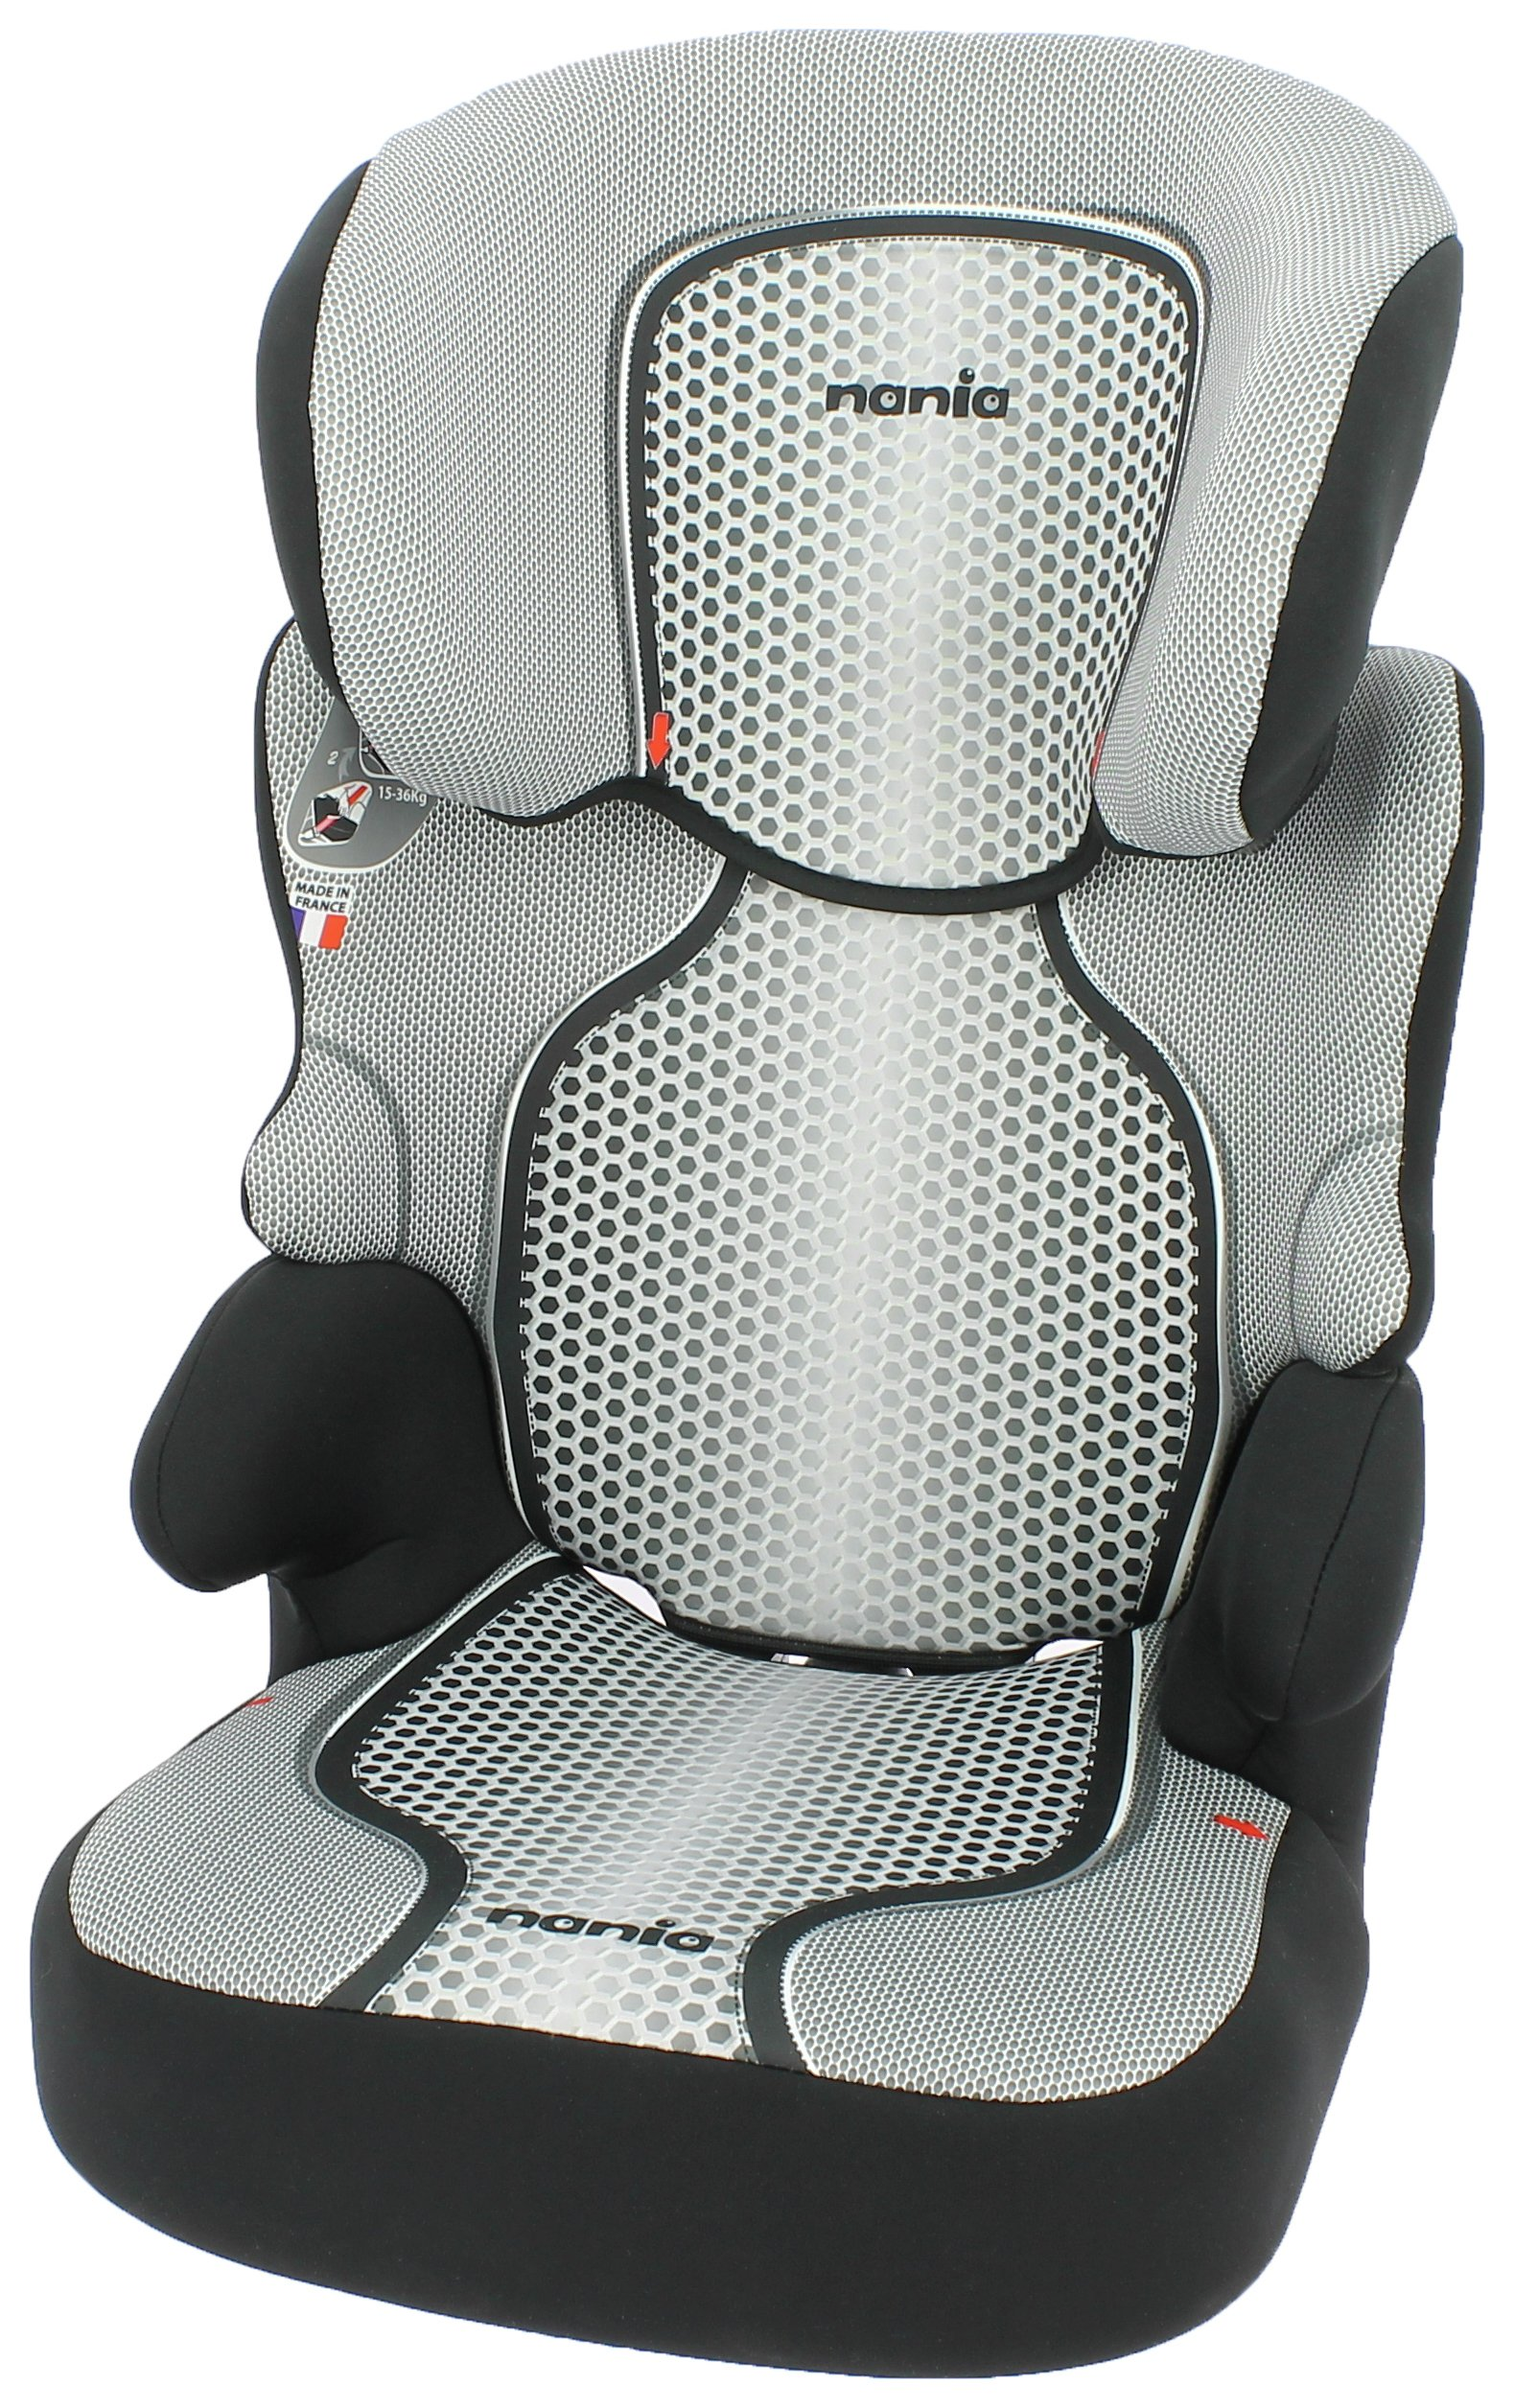 Nania Befix SP First Pop Group 2/3 Booster Car Seat - Black